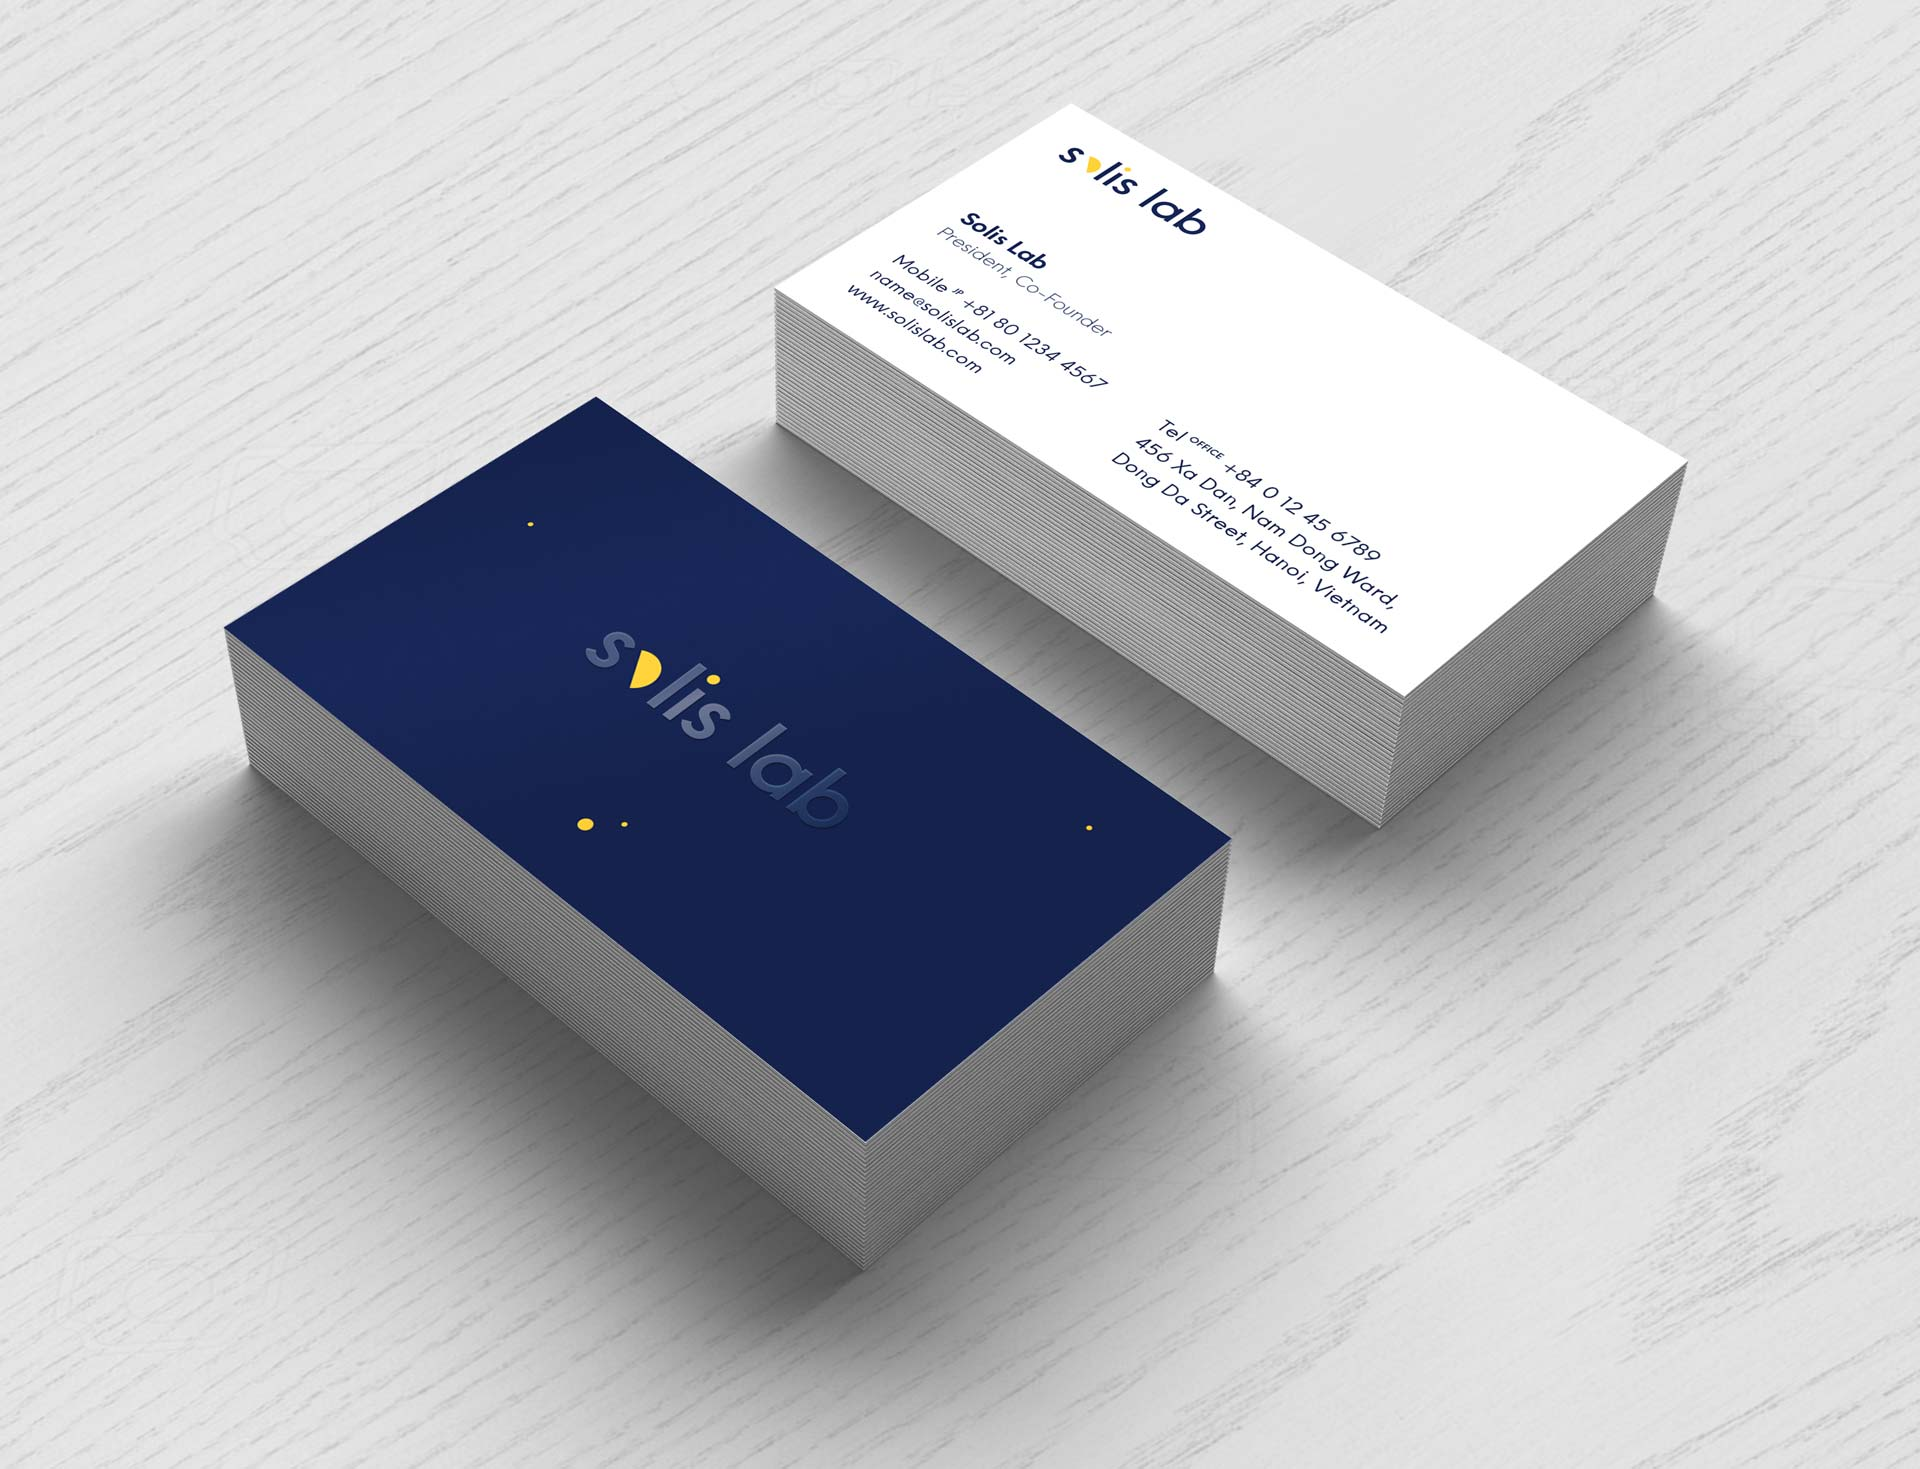 solis lab - business card design